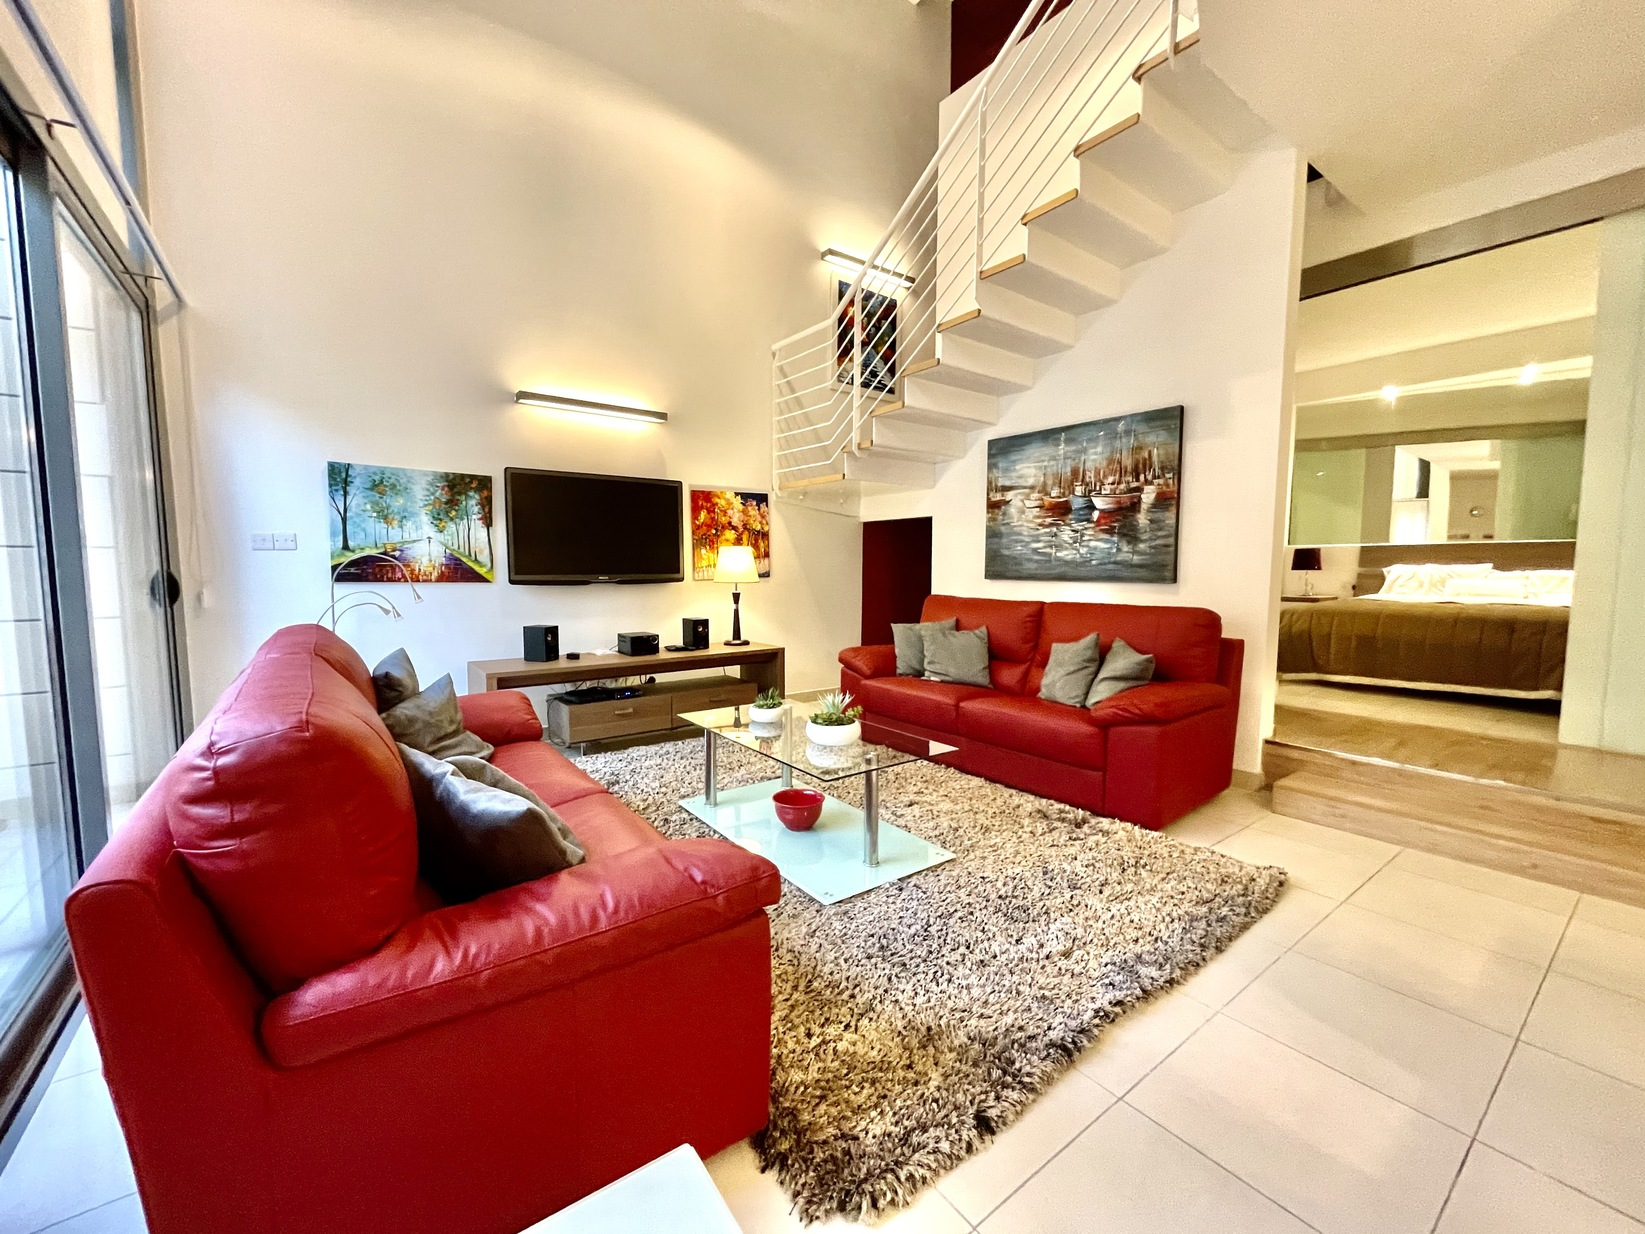 2 bed Apartment For Rent in St. Julian's, St Julian's - thumb 5